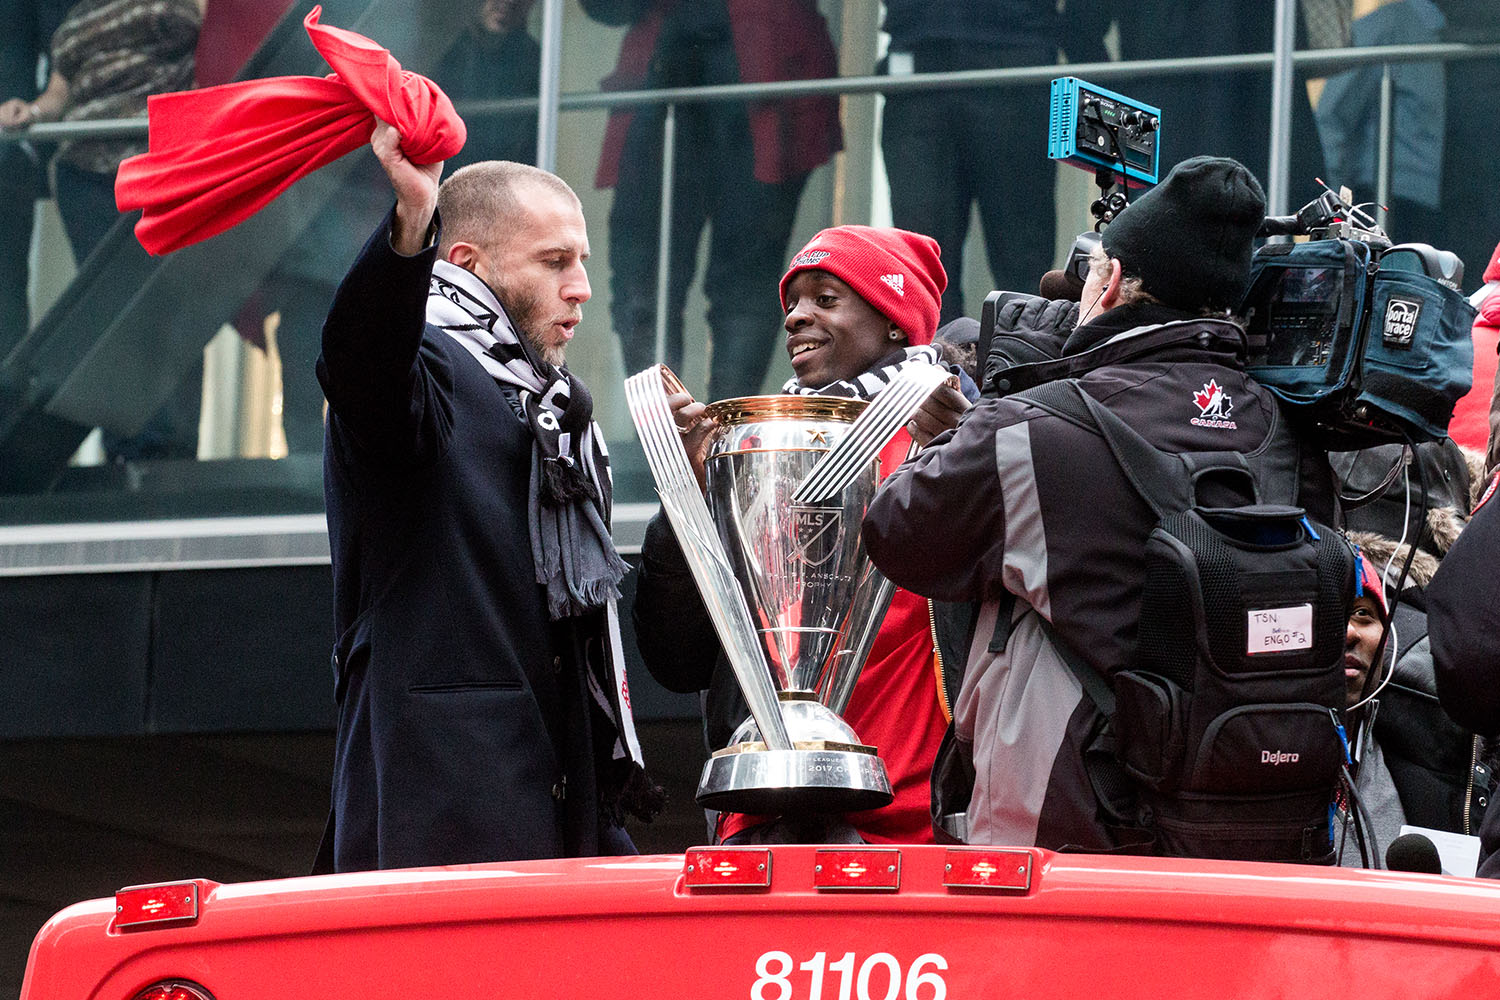 Toronto FC players celebrate with the trophy during the Toronto FC 2017 MLS Cup Parade. Image by Dennis Marciniak of Denmar Media.